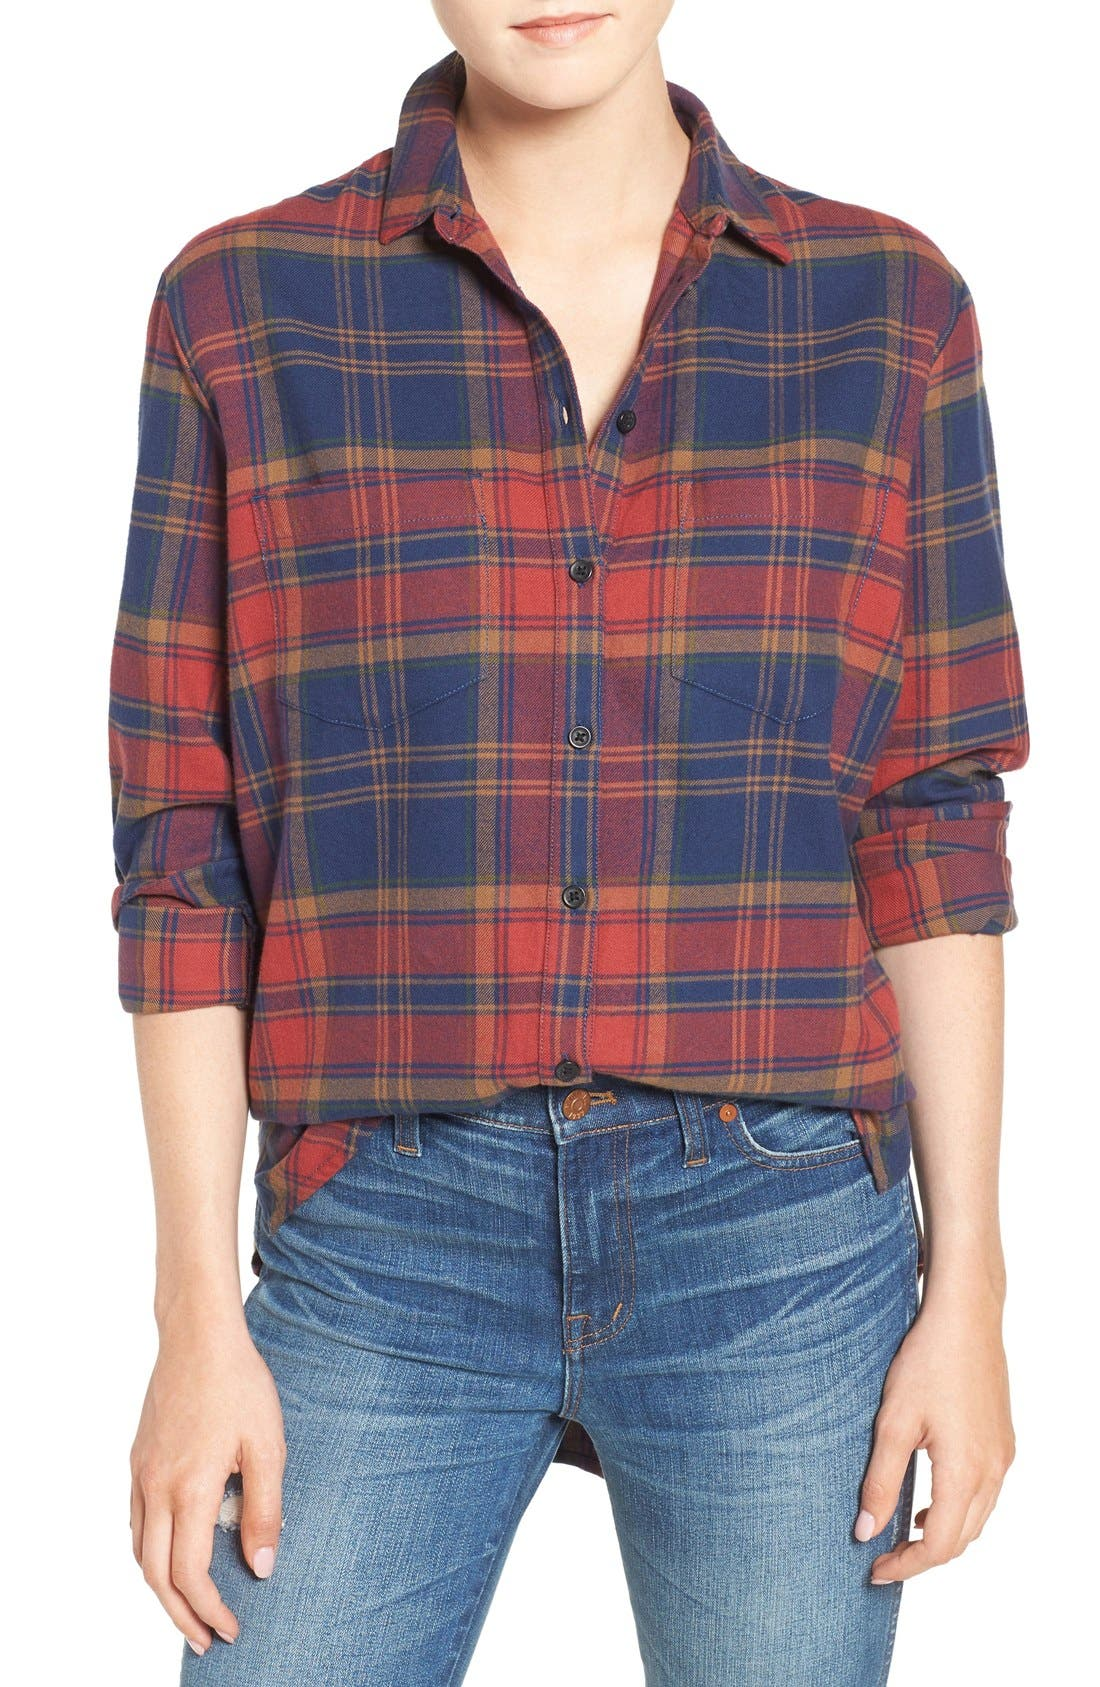 Alternate Image 1 Selected - Madewell Ex-Boyfriend Shrunken Flannel Boyfriend Shirt